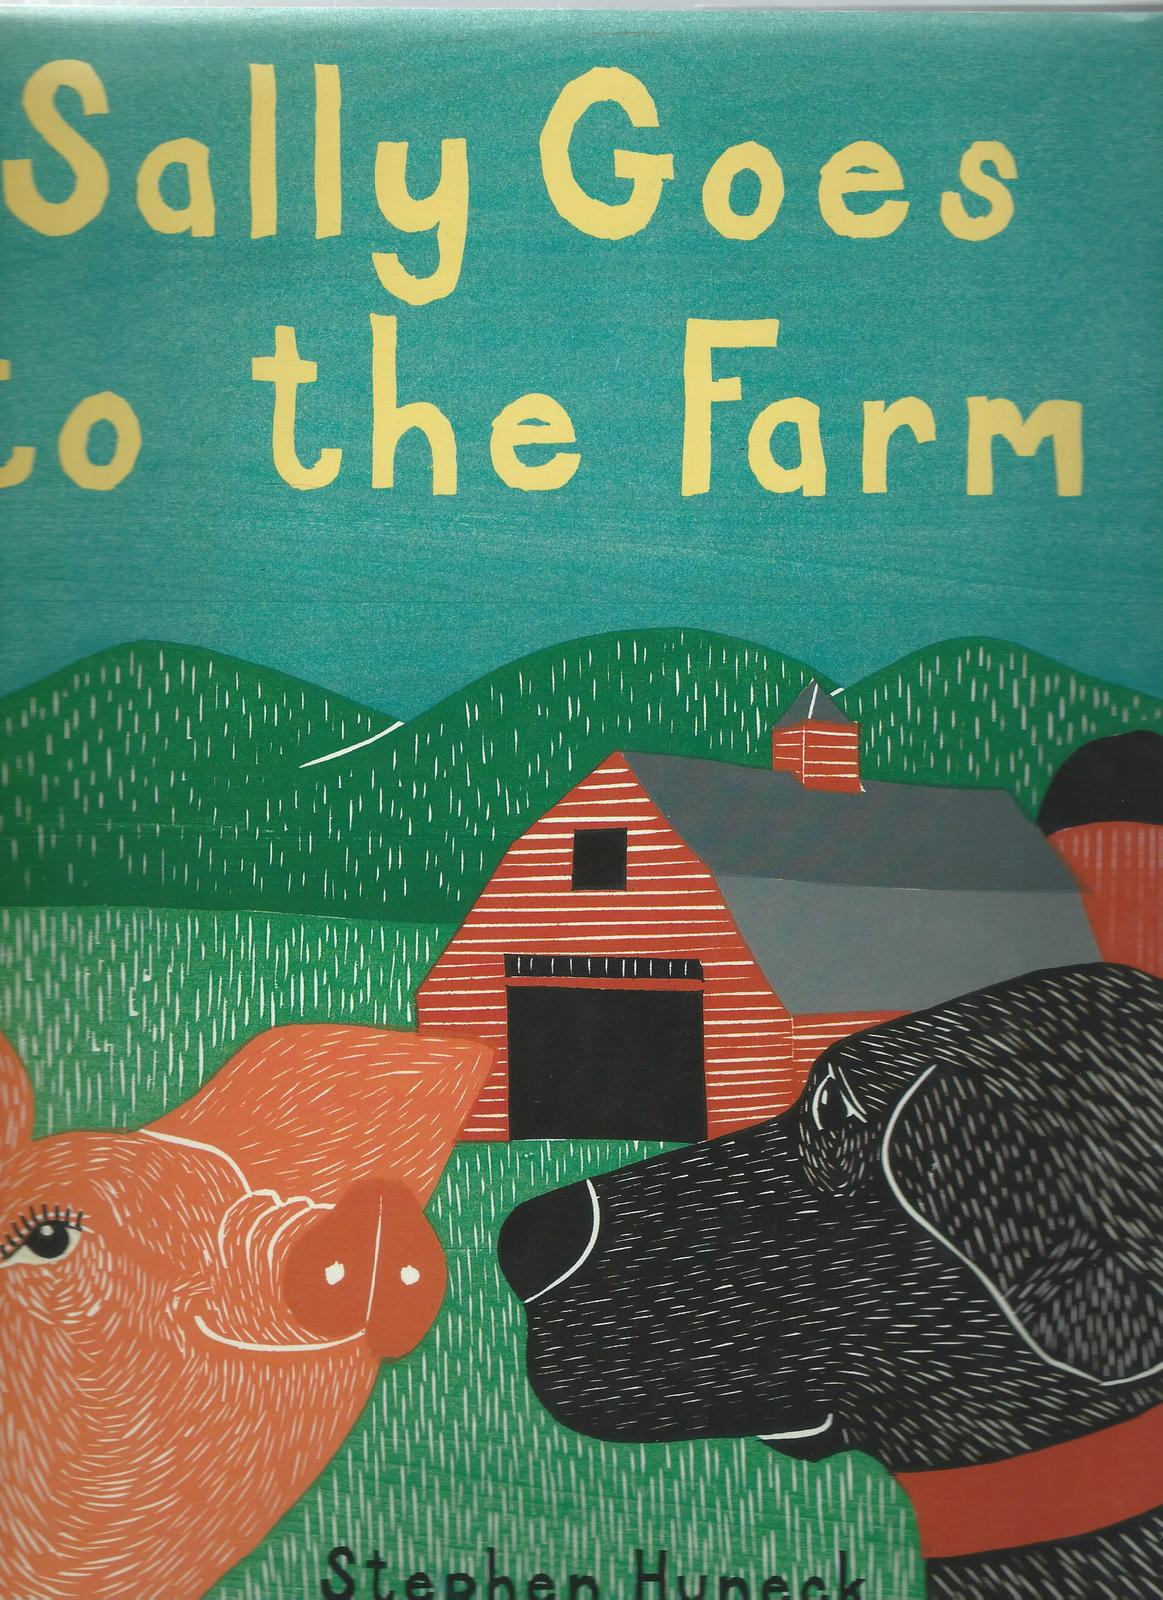 Sally goes to the farm 001